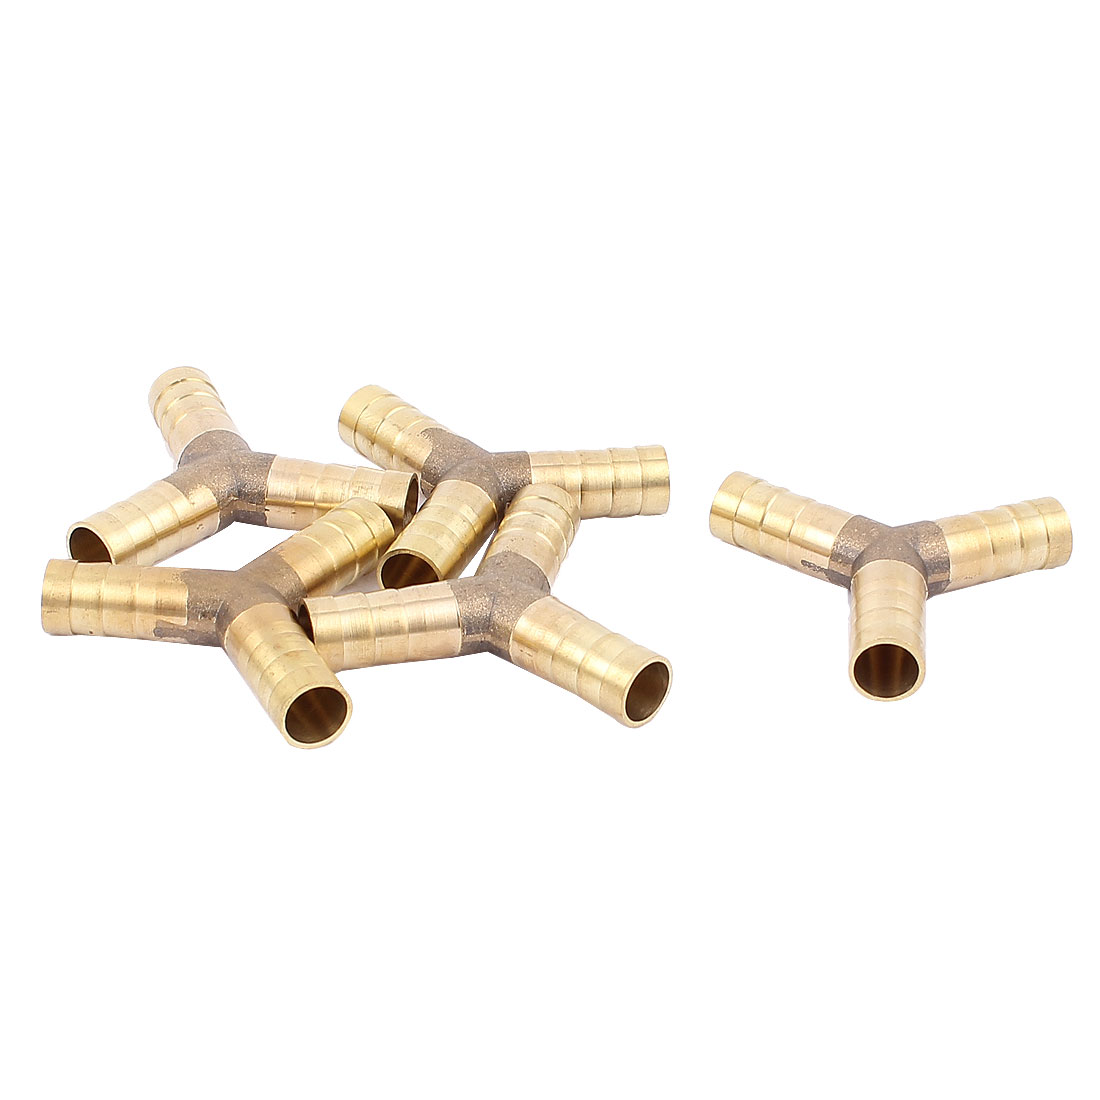 Brass Y Shape 3 Way 10mm Barb Gas Water Tube Hose Fitting Connector Joiner 5Pcs